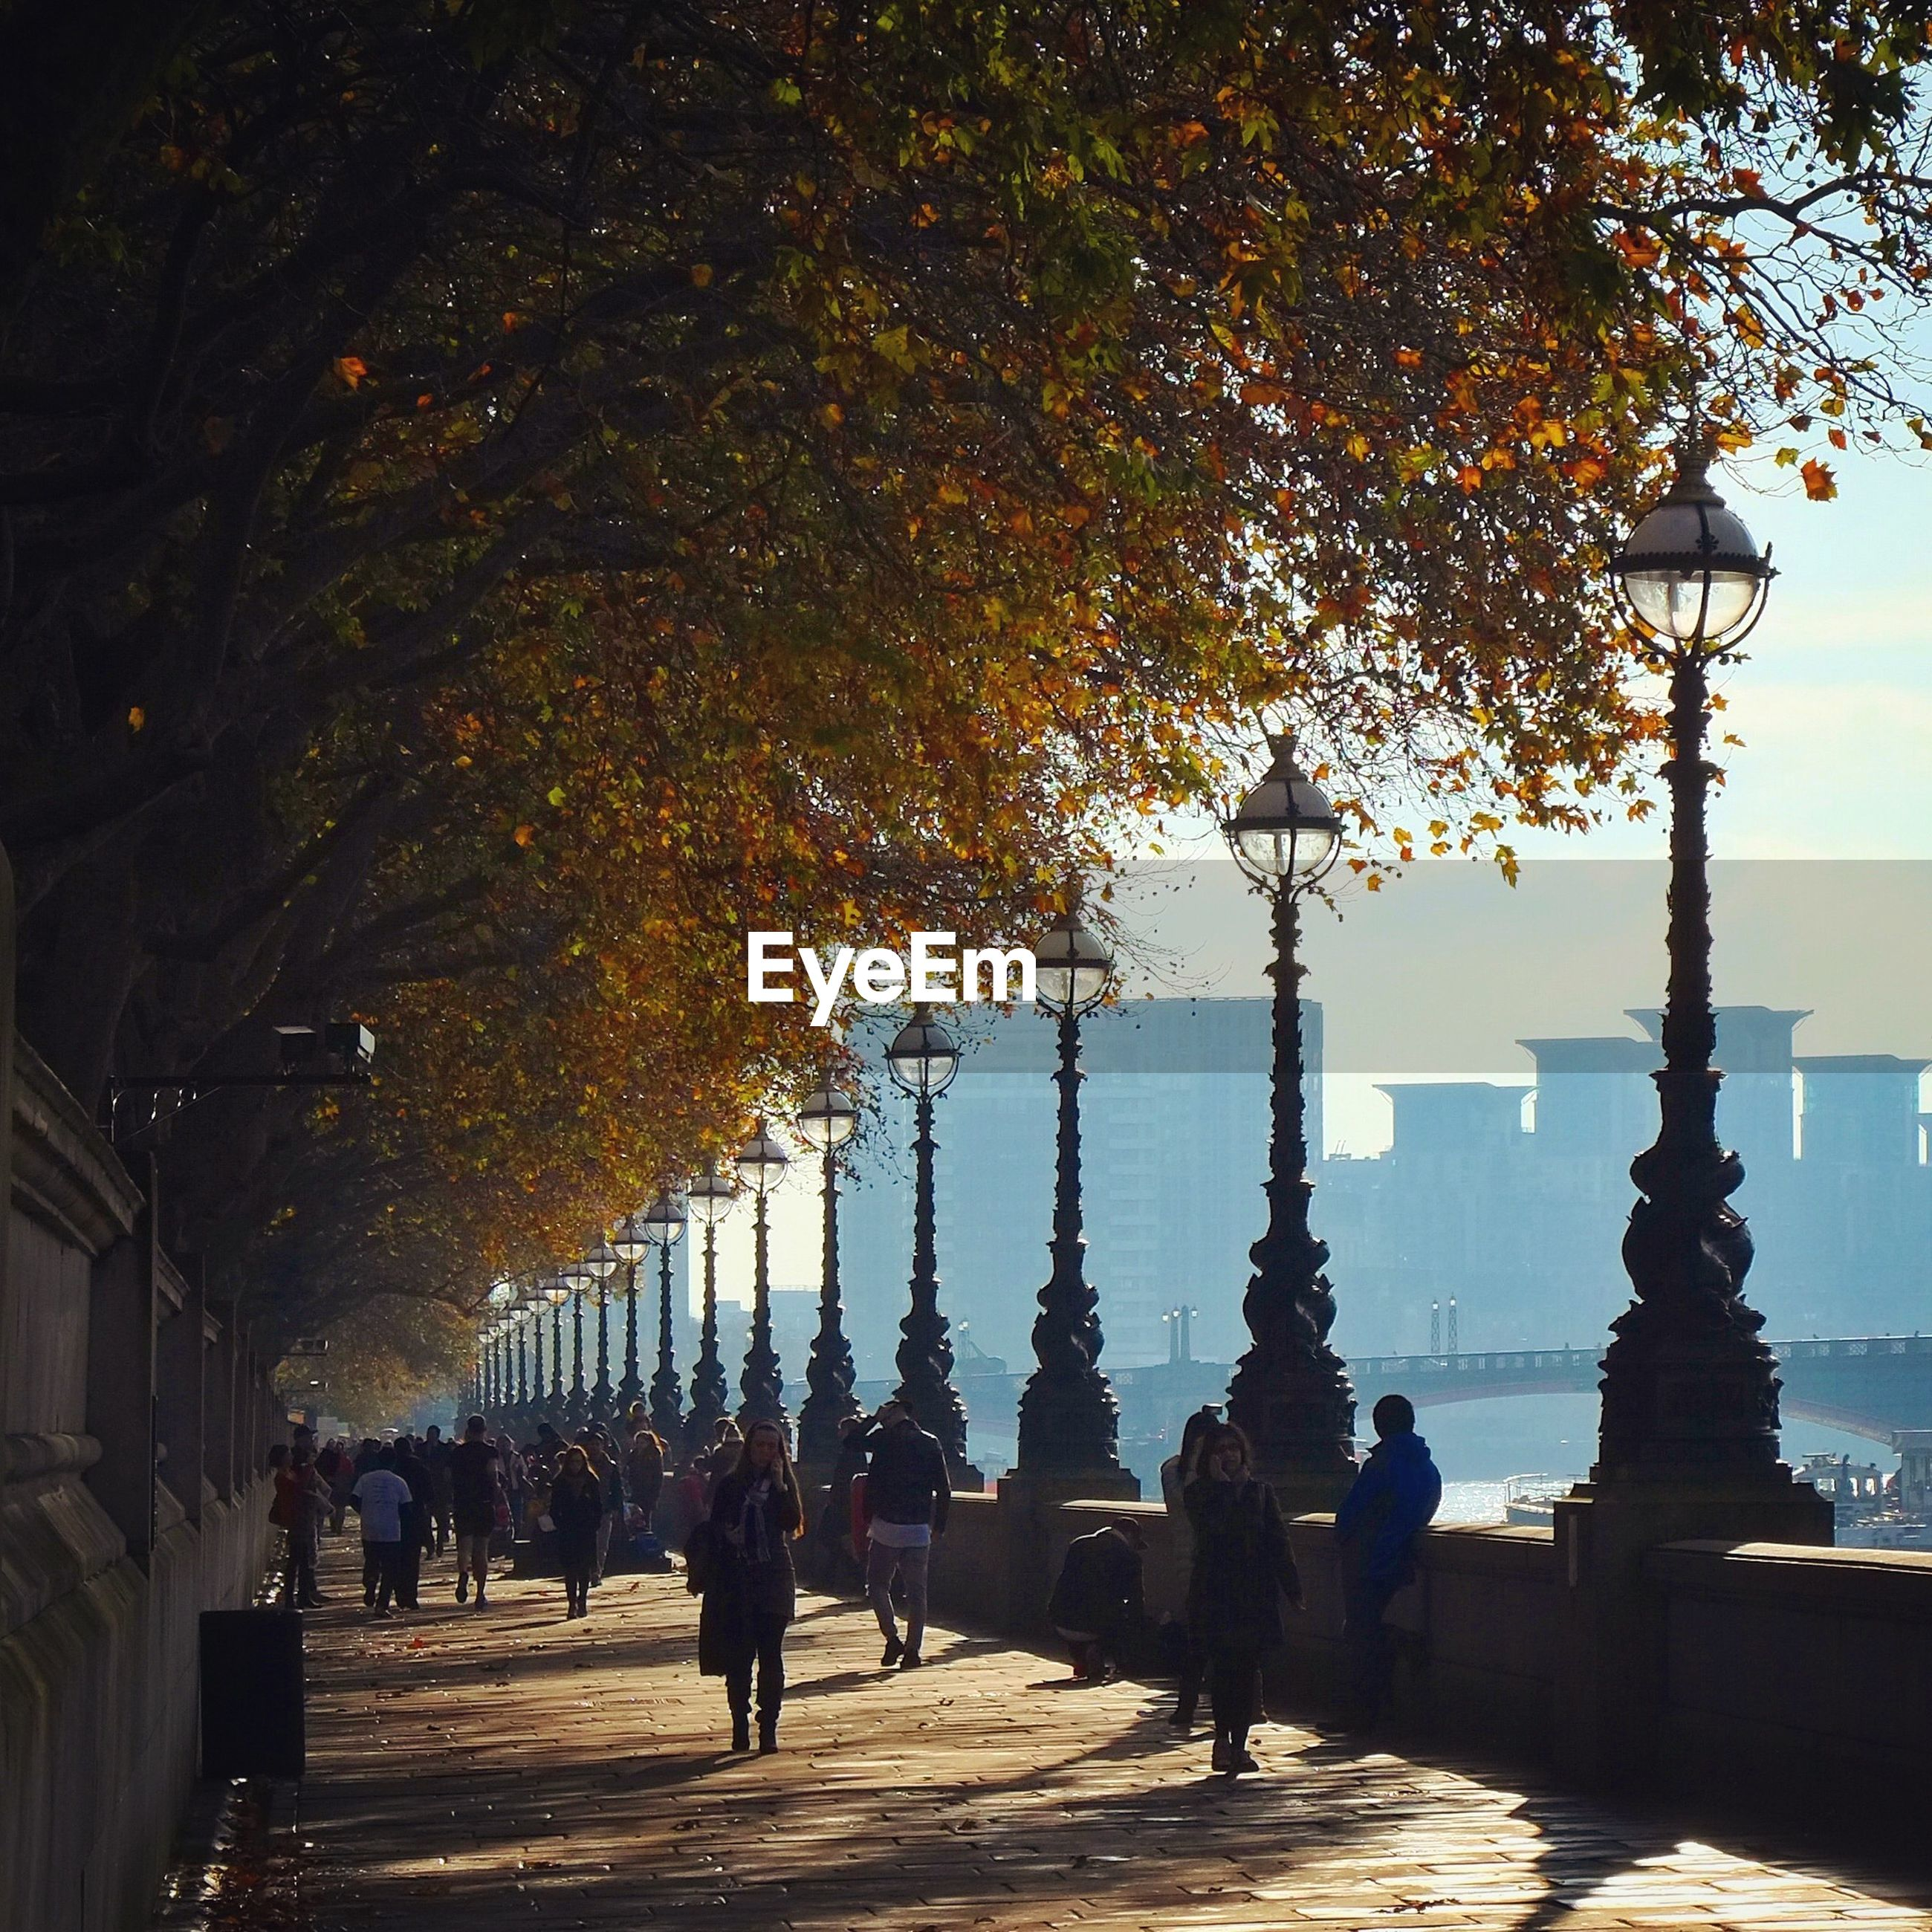 People walking on footpath during autumn